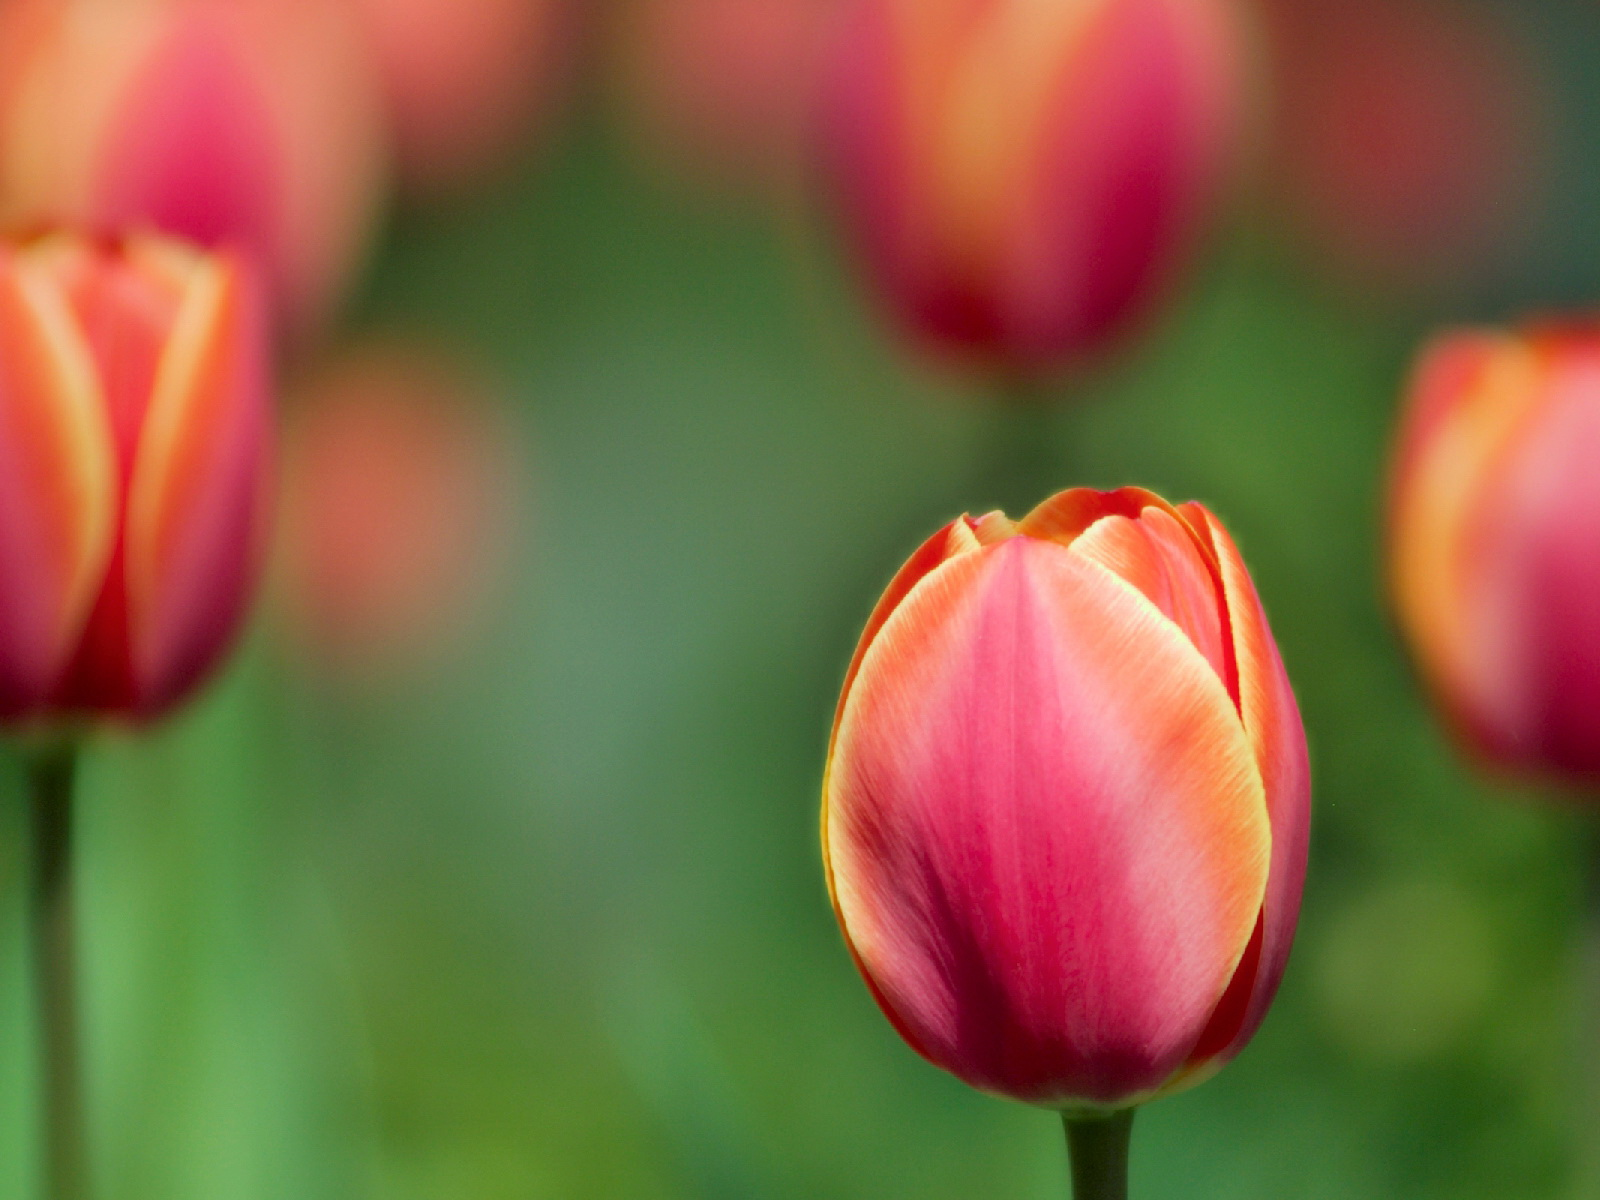 Beautiful Image of Nature Landscape, Red Tulip on Green